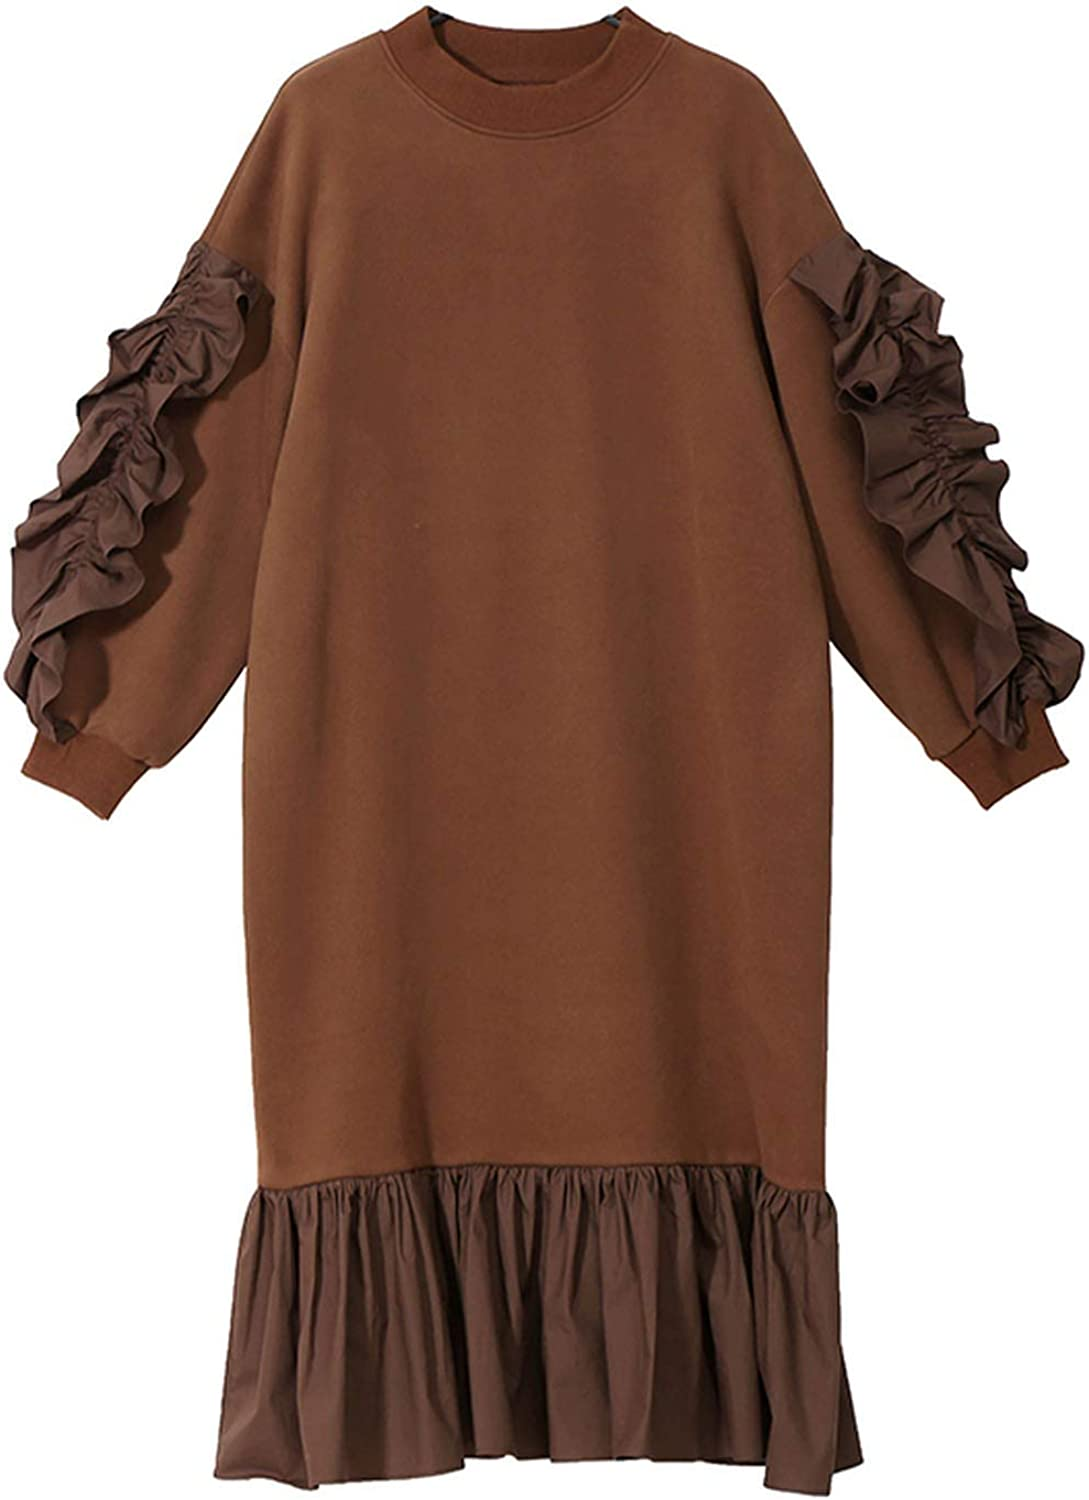 AllAboutUs Women Winter Long Solid Brown Black Dress Long Sleeve with Ruffle Stitched Dress 4591